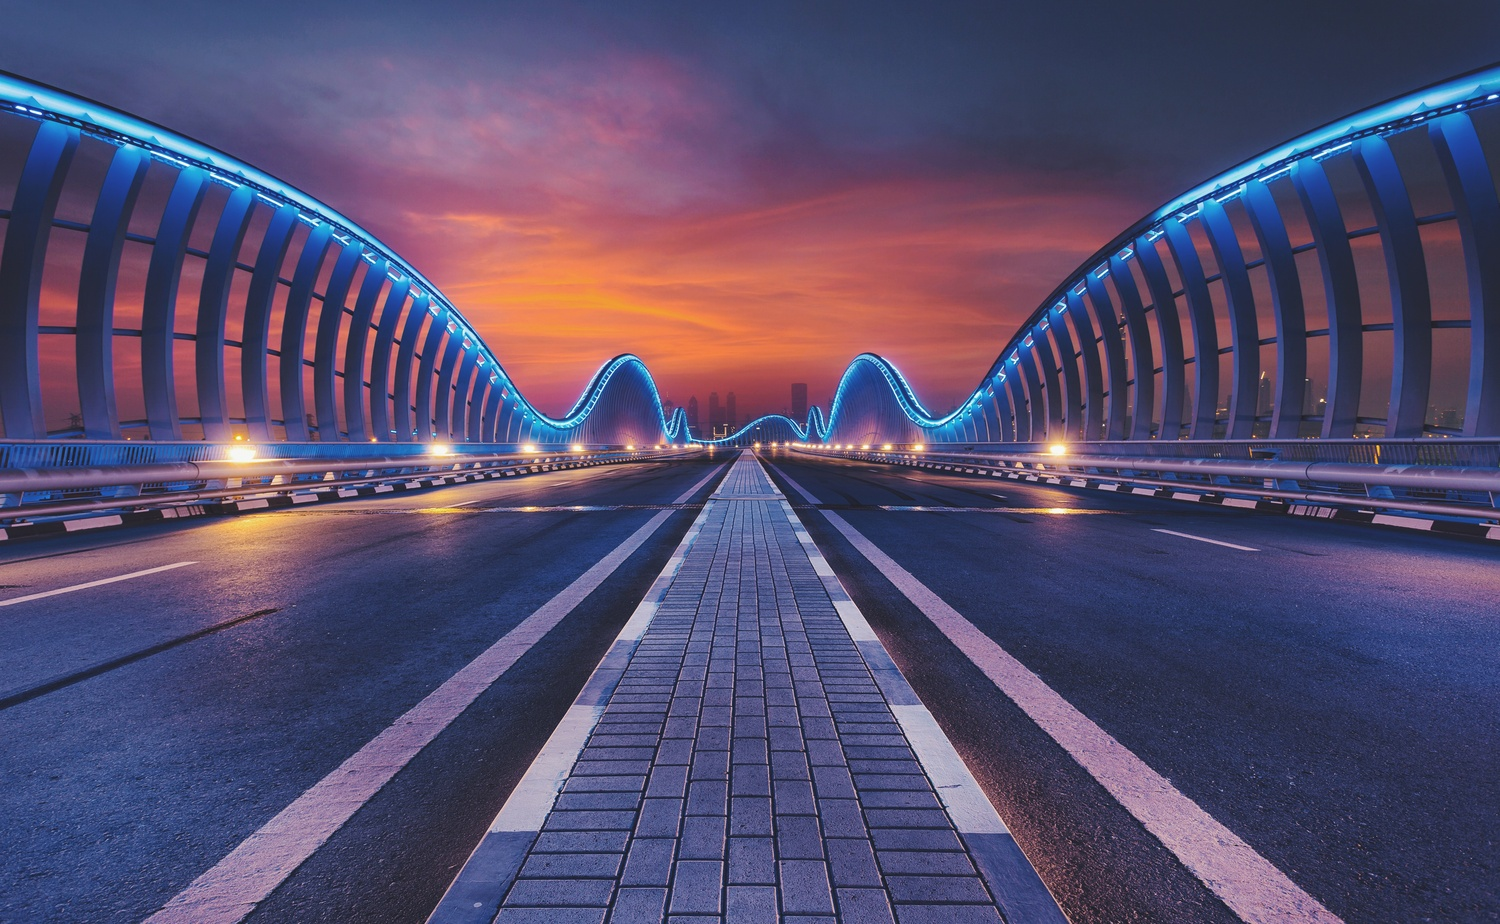 Meydan Bridge by Rafal Hyps